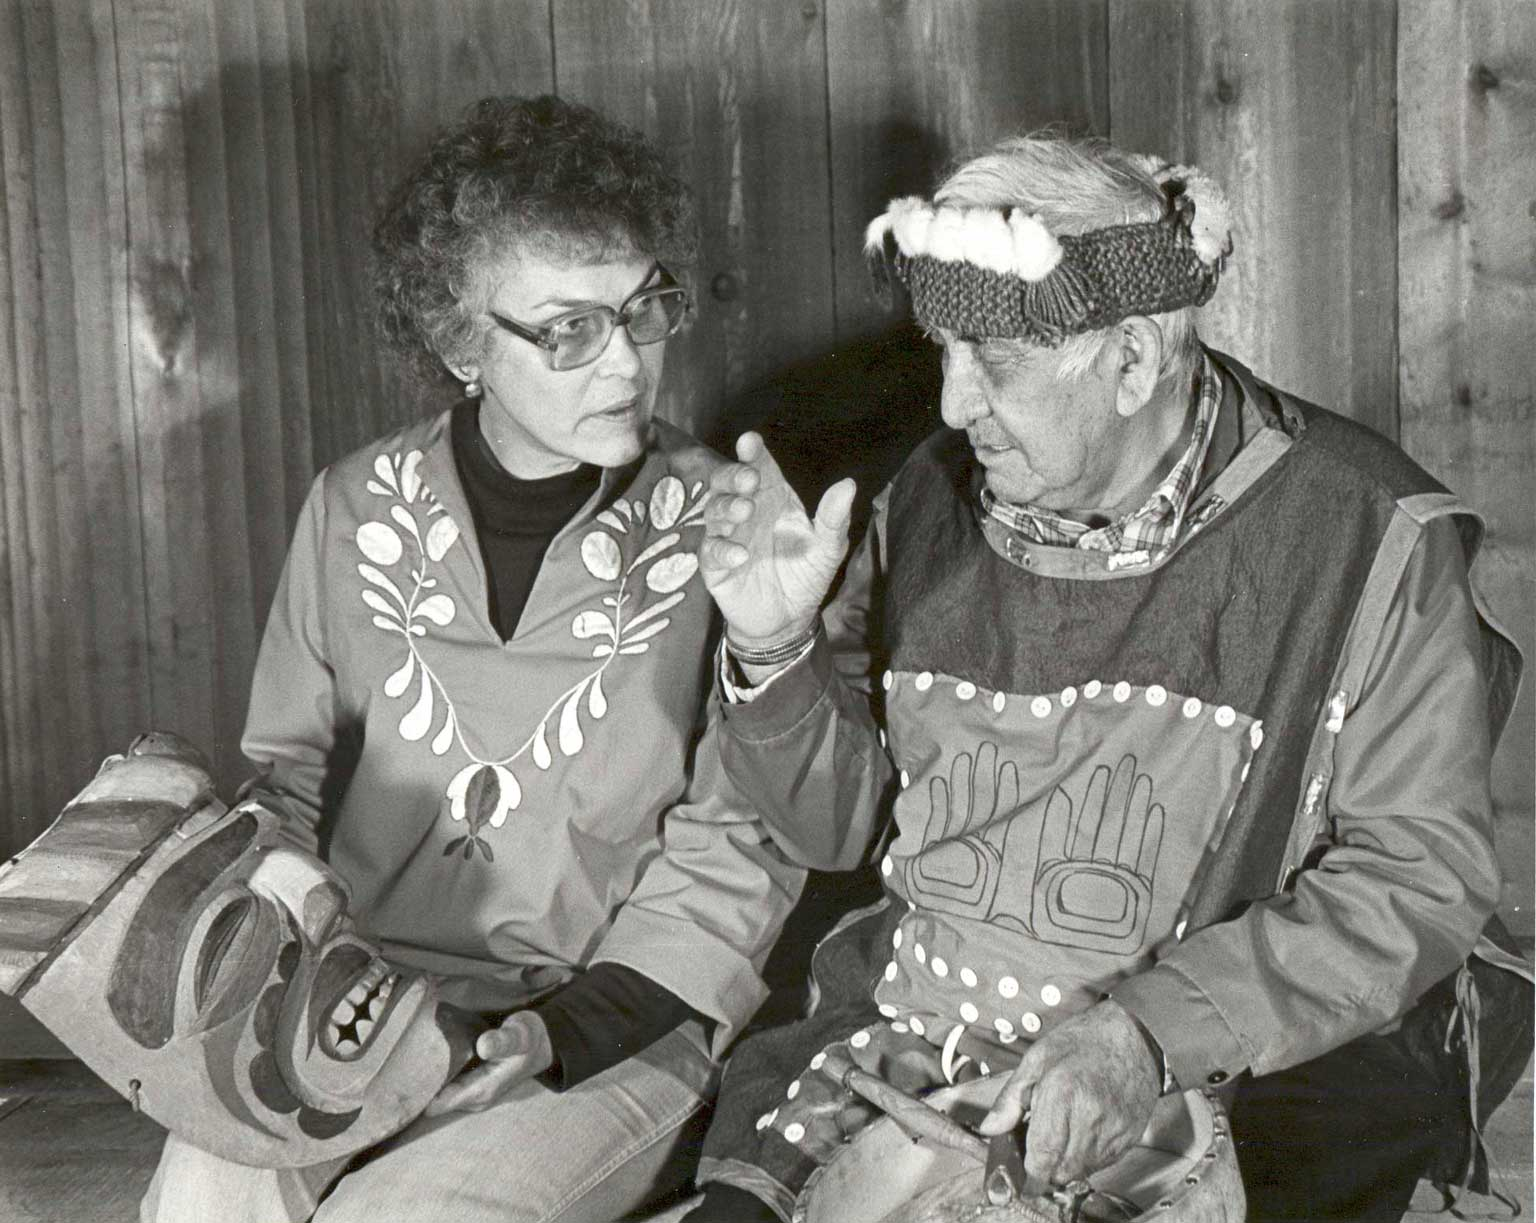 Black and white photograph shows Gloria holding Imas Mask UCC 80.01.017 while Jack - wearing a cedar bark headdress - looks on.